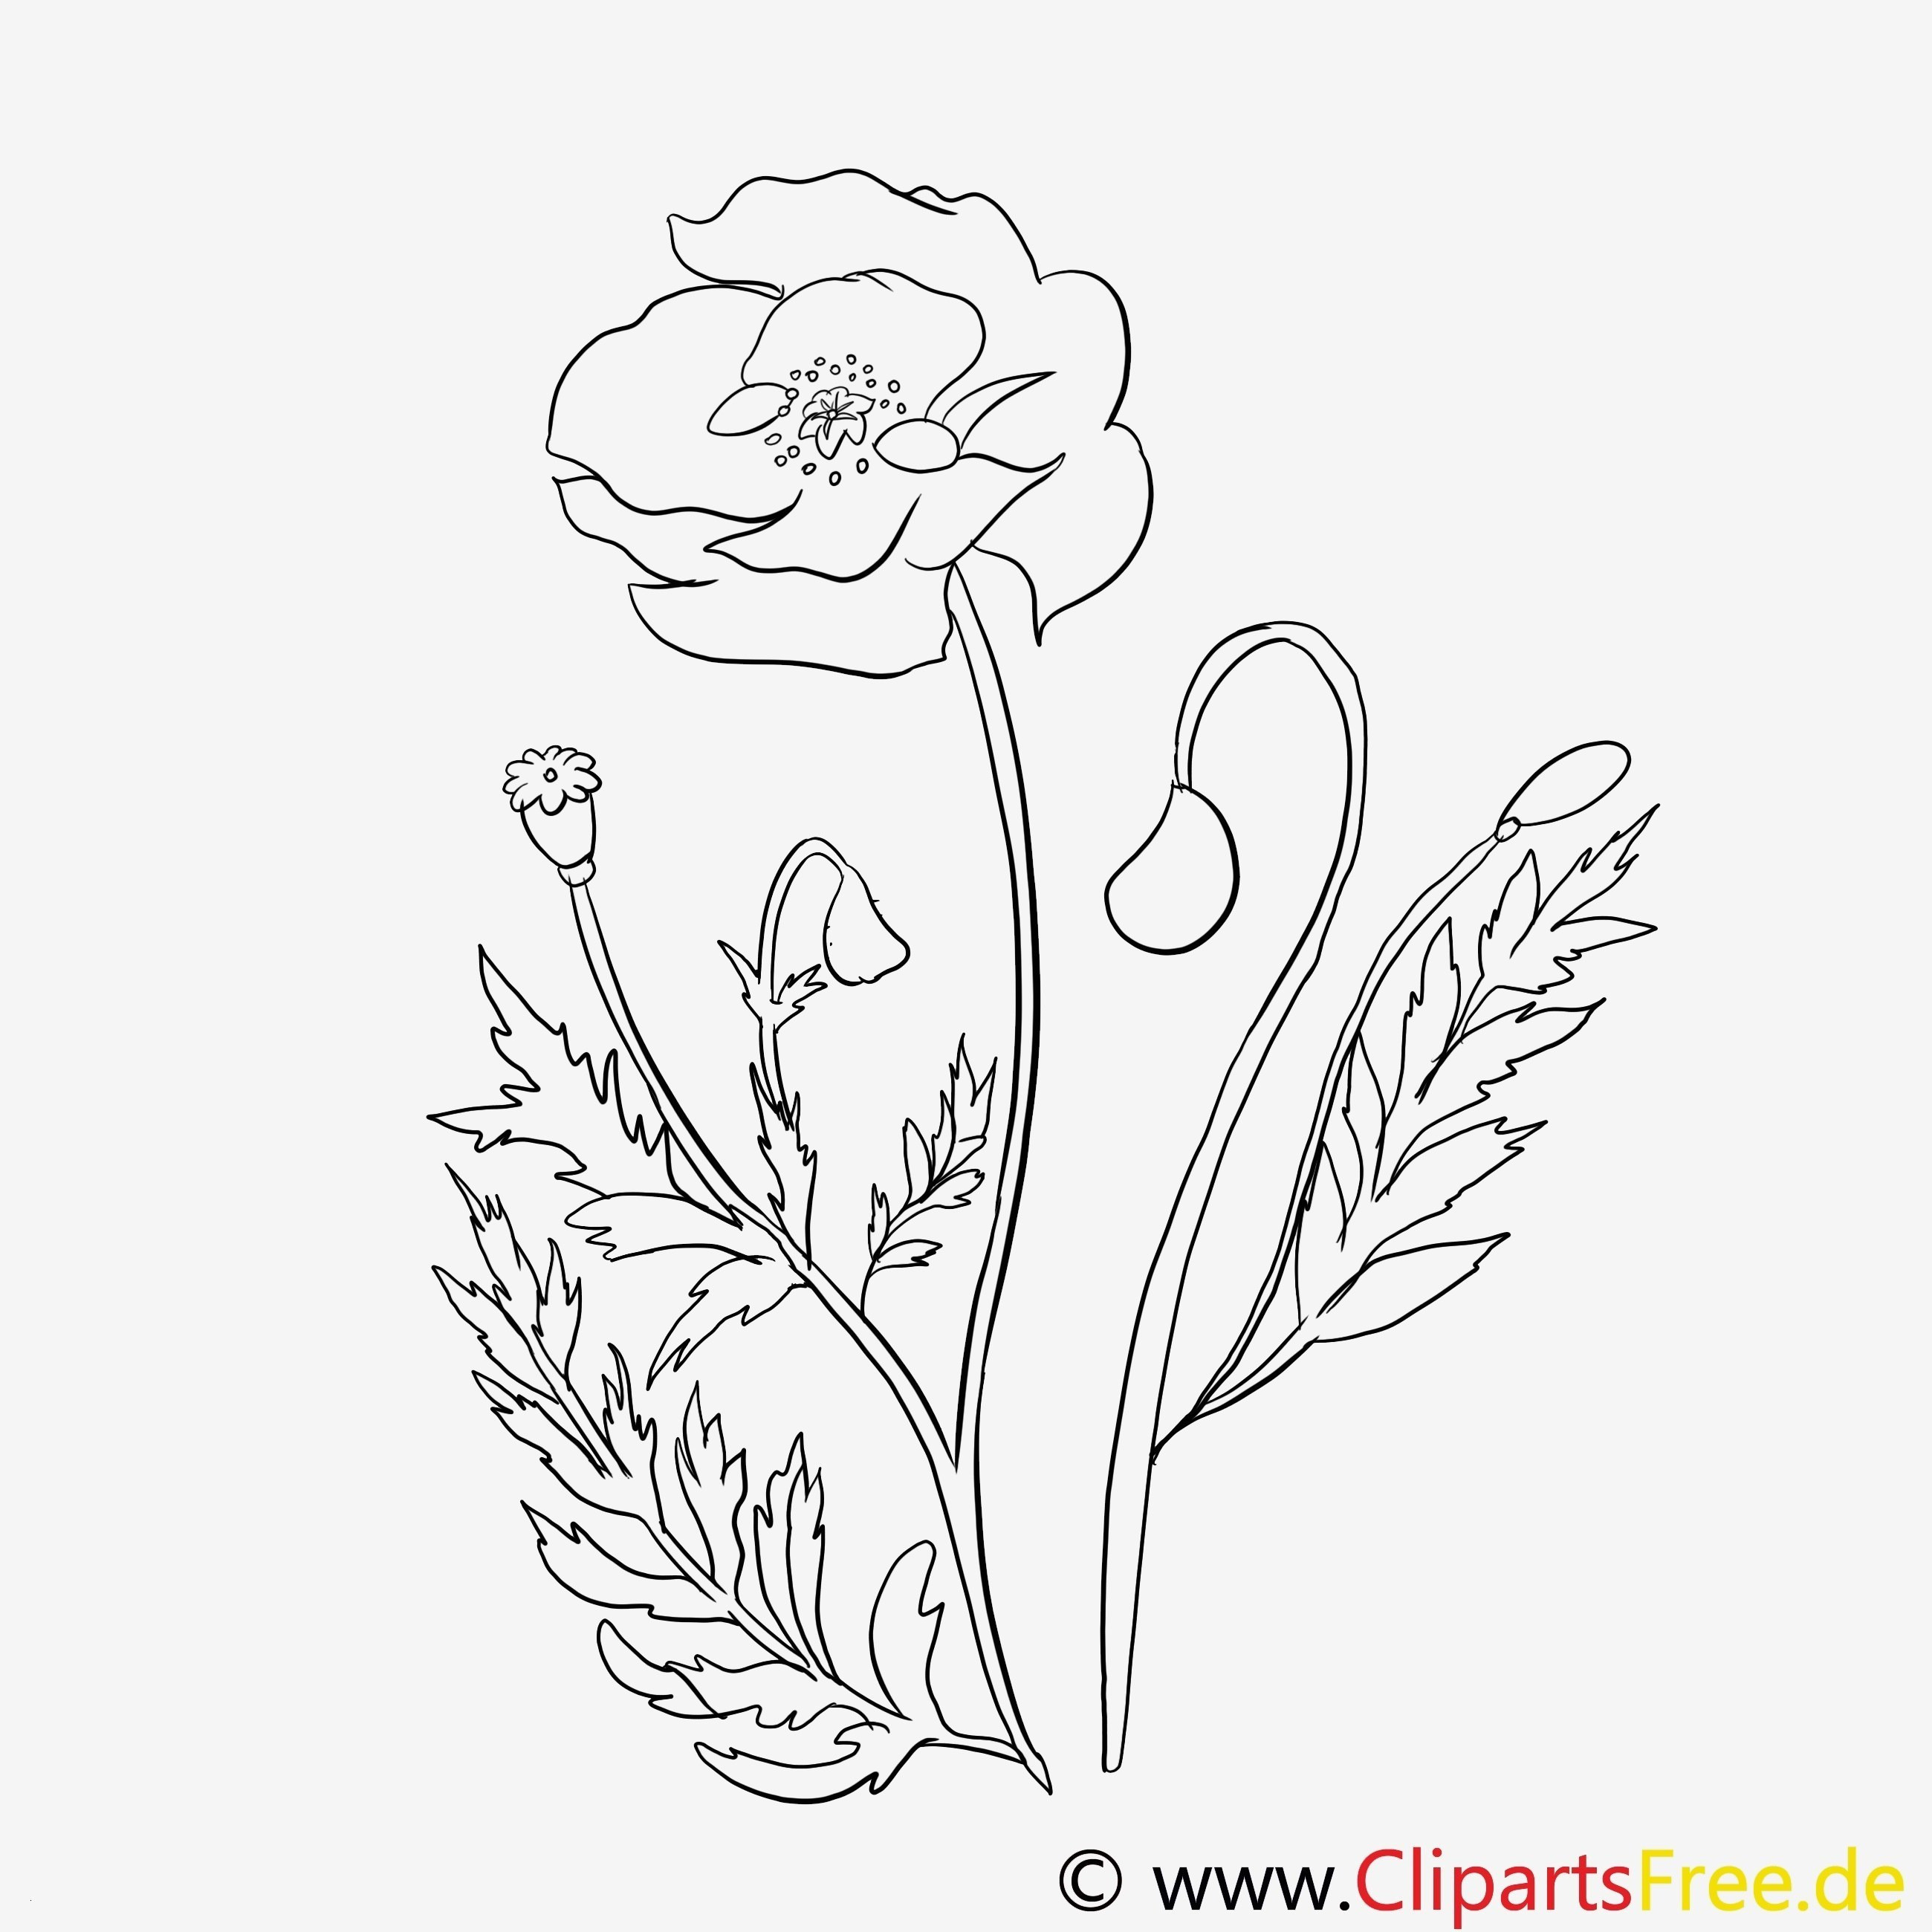 Malvorlagen Blumen Rosen Genial Ausmalbilder Jaguar Elegant Sports Coloring Pages Popular Sports Bild